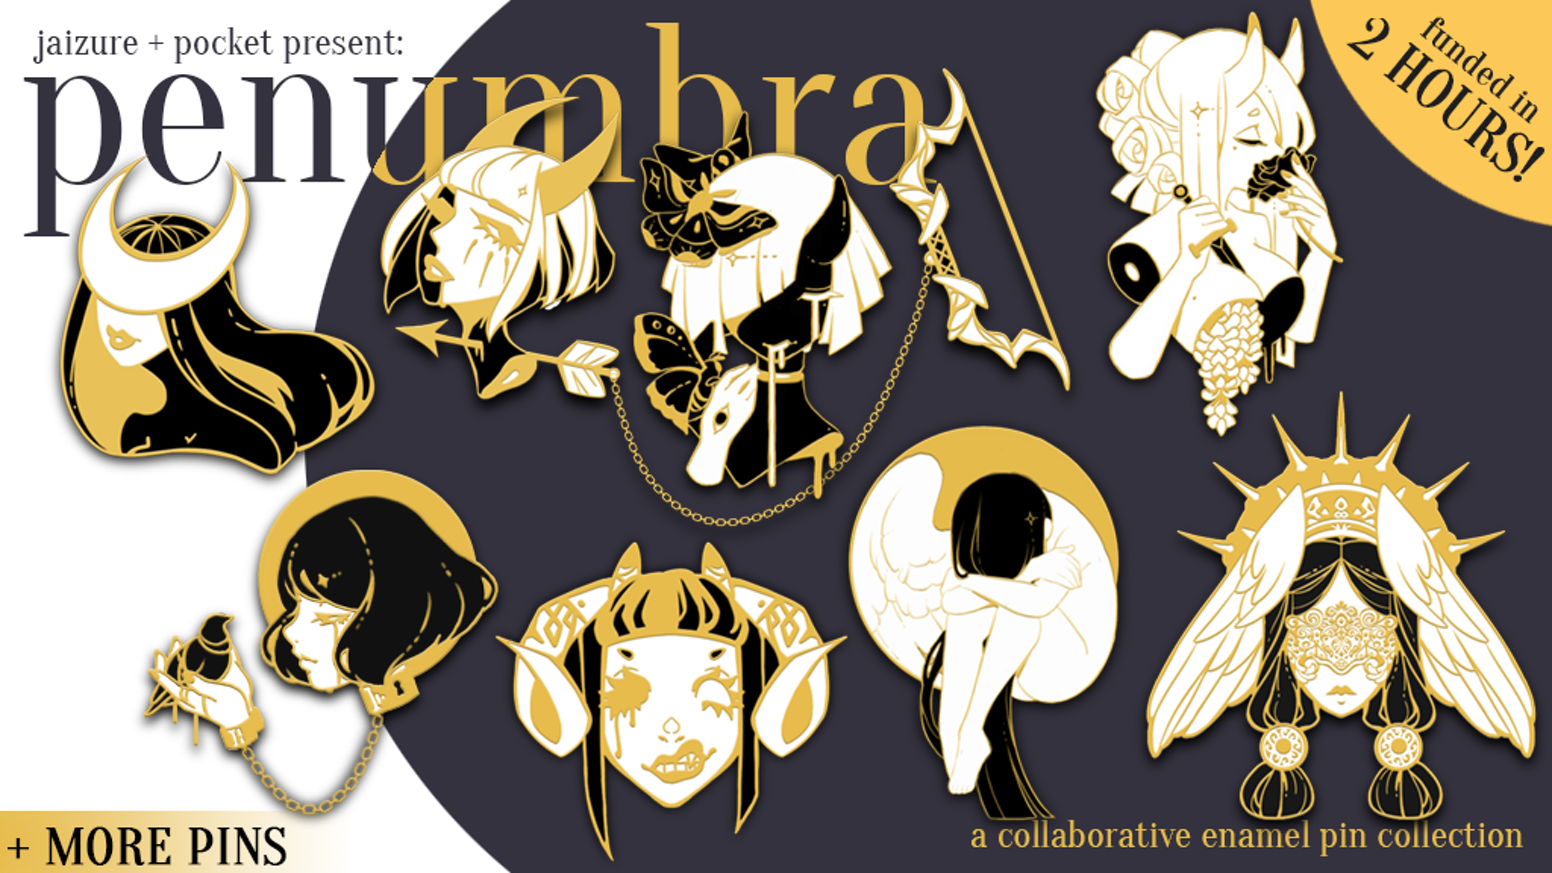 Penumbra Pin Collection is a collaborative set of original enamel pins themed around angels and demons.